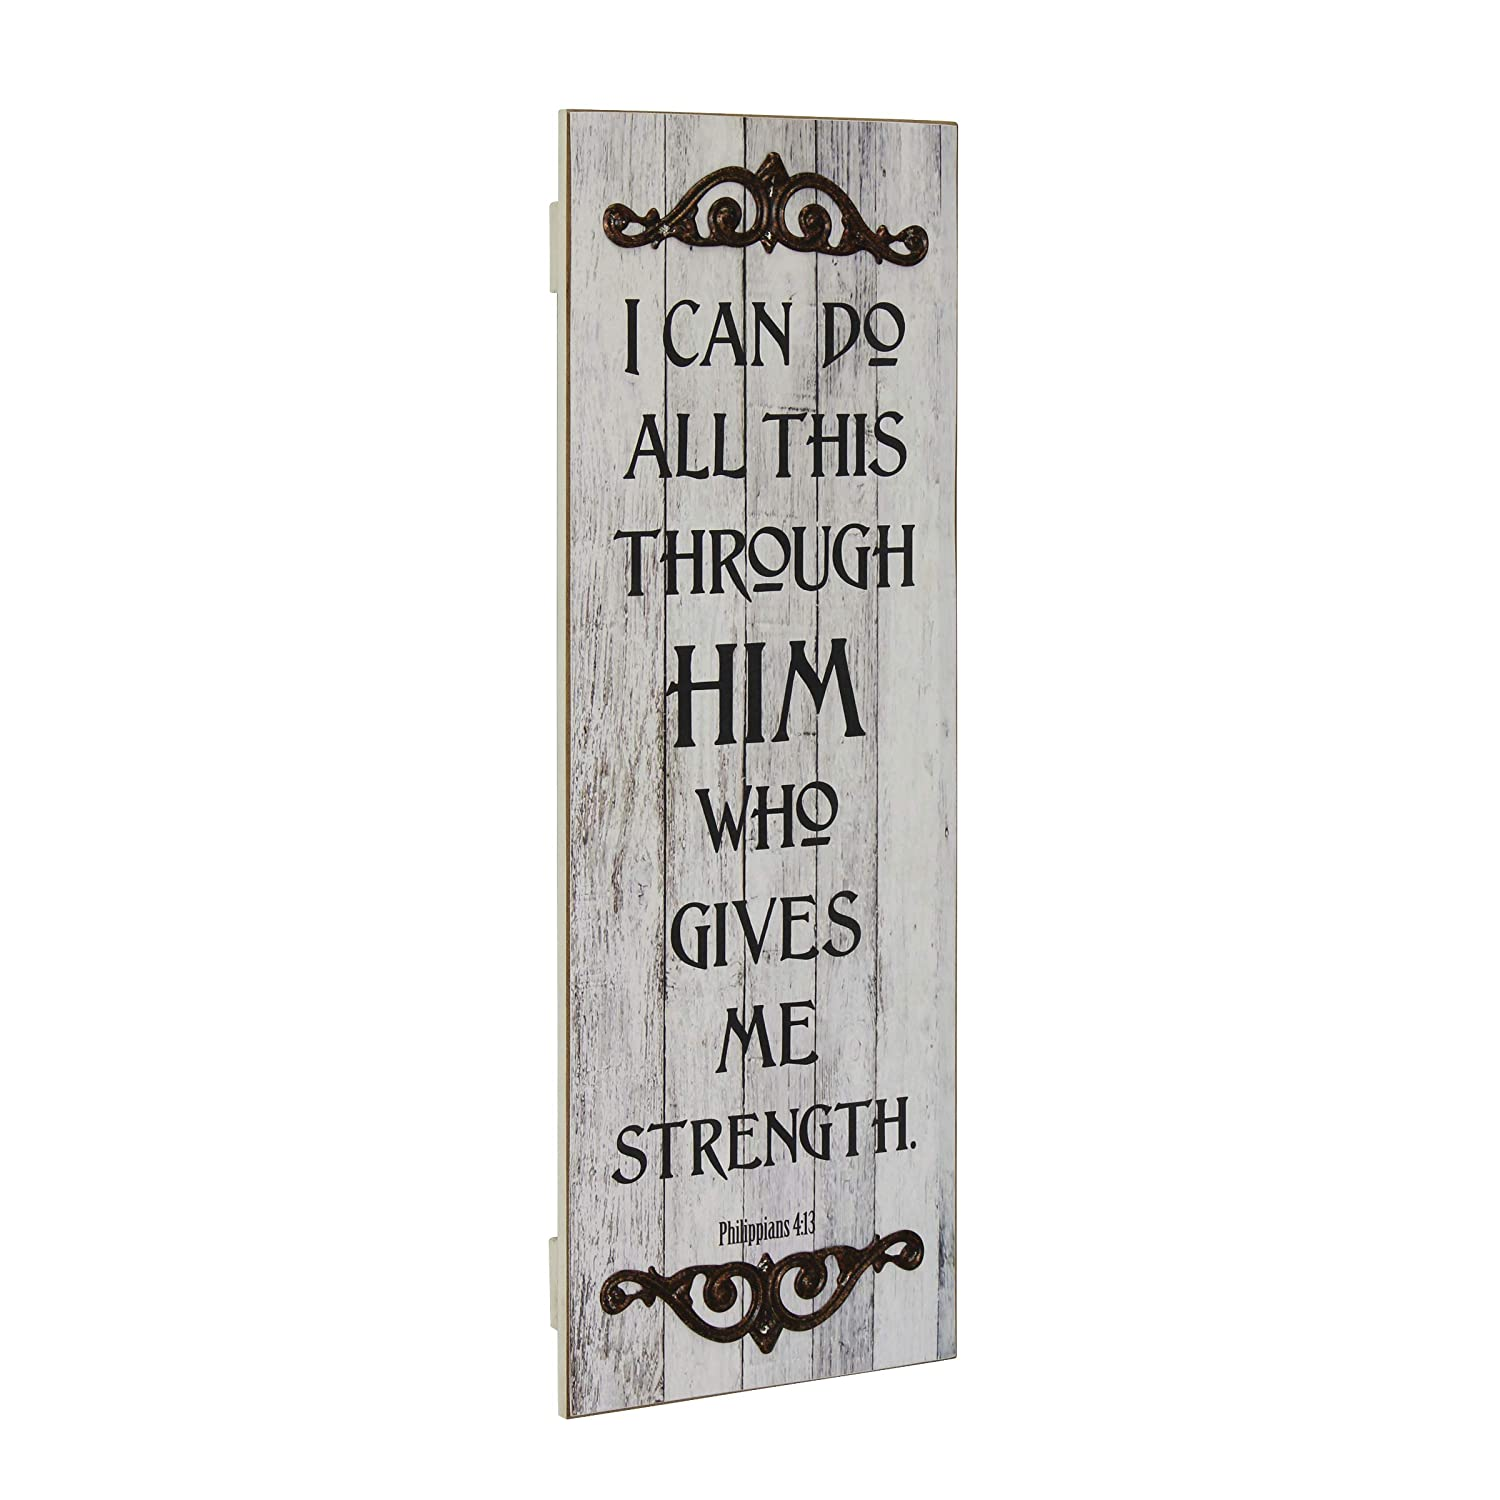 Stonebriar Philippians 4:13 Rustic Decorative Worn White Painted Wall Art with Metal Trim